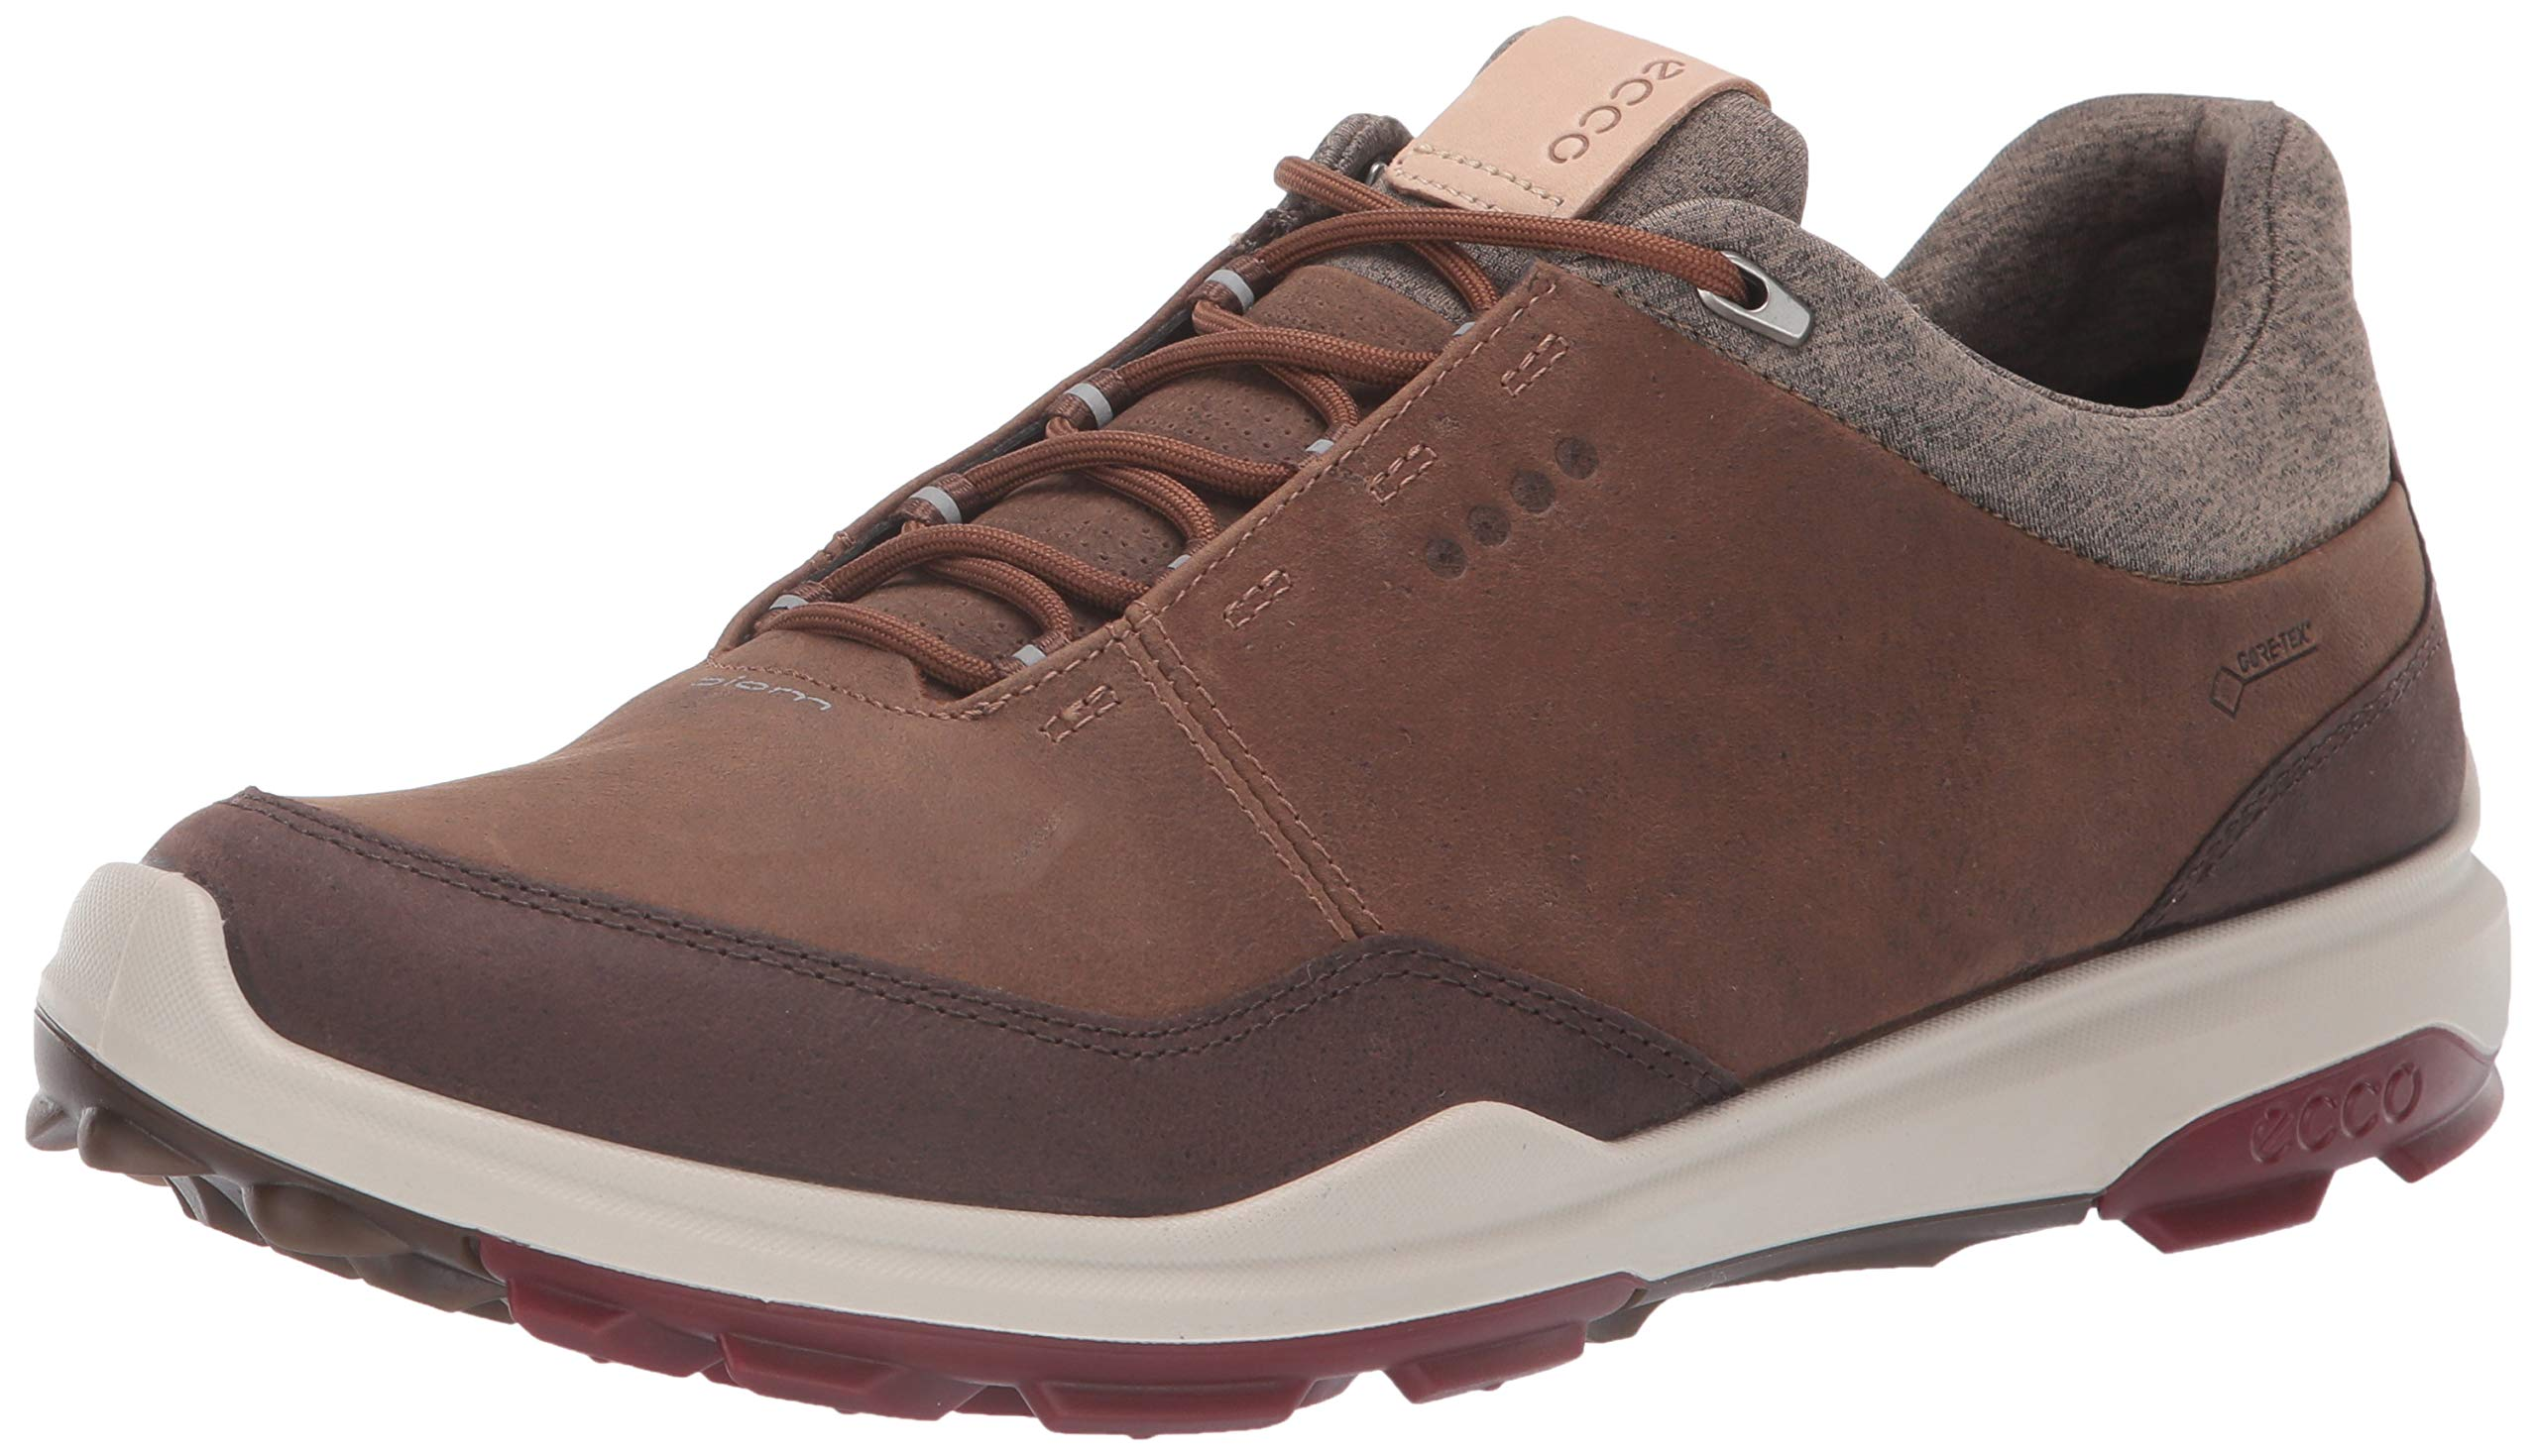 ECCO Men's Biom Hybrid 3 Gore-TEX Golf Shoe, Camel, 39 M EU (5-5.5 US)